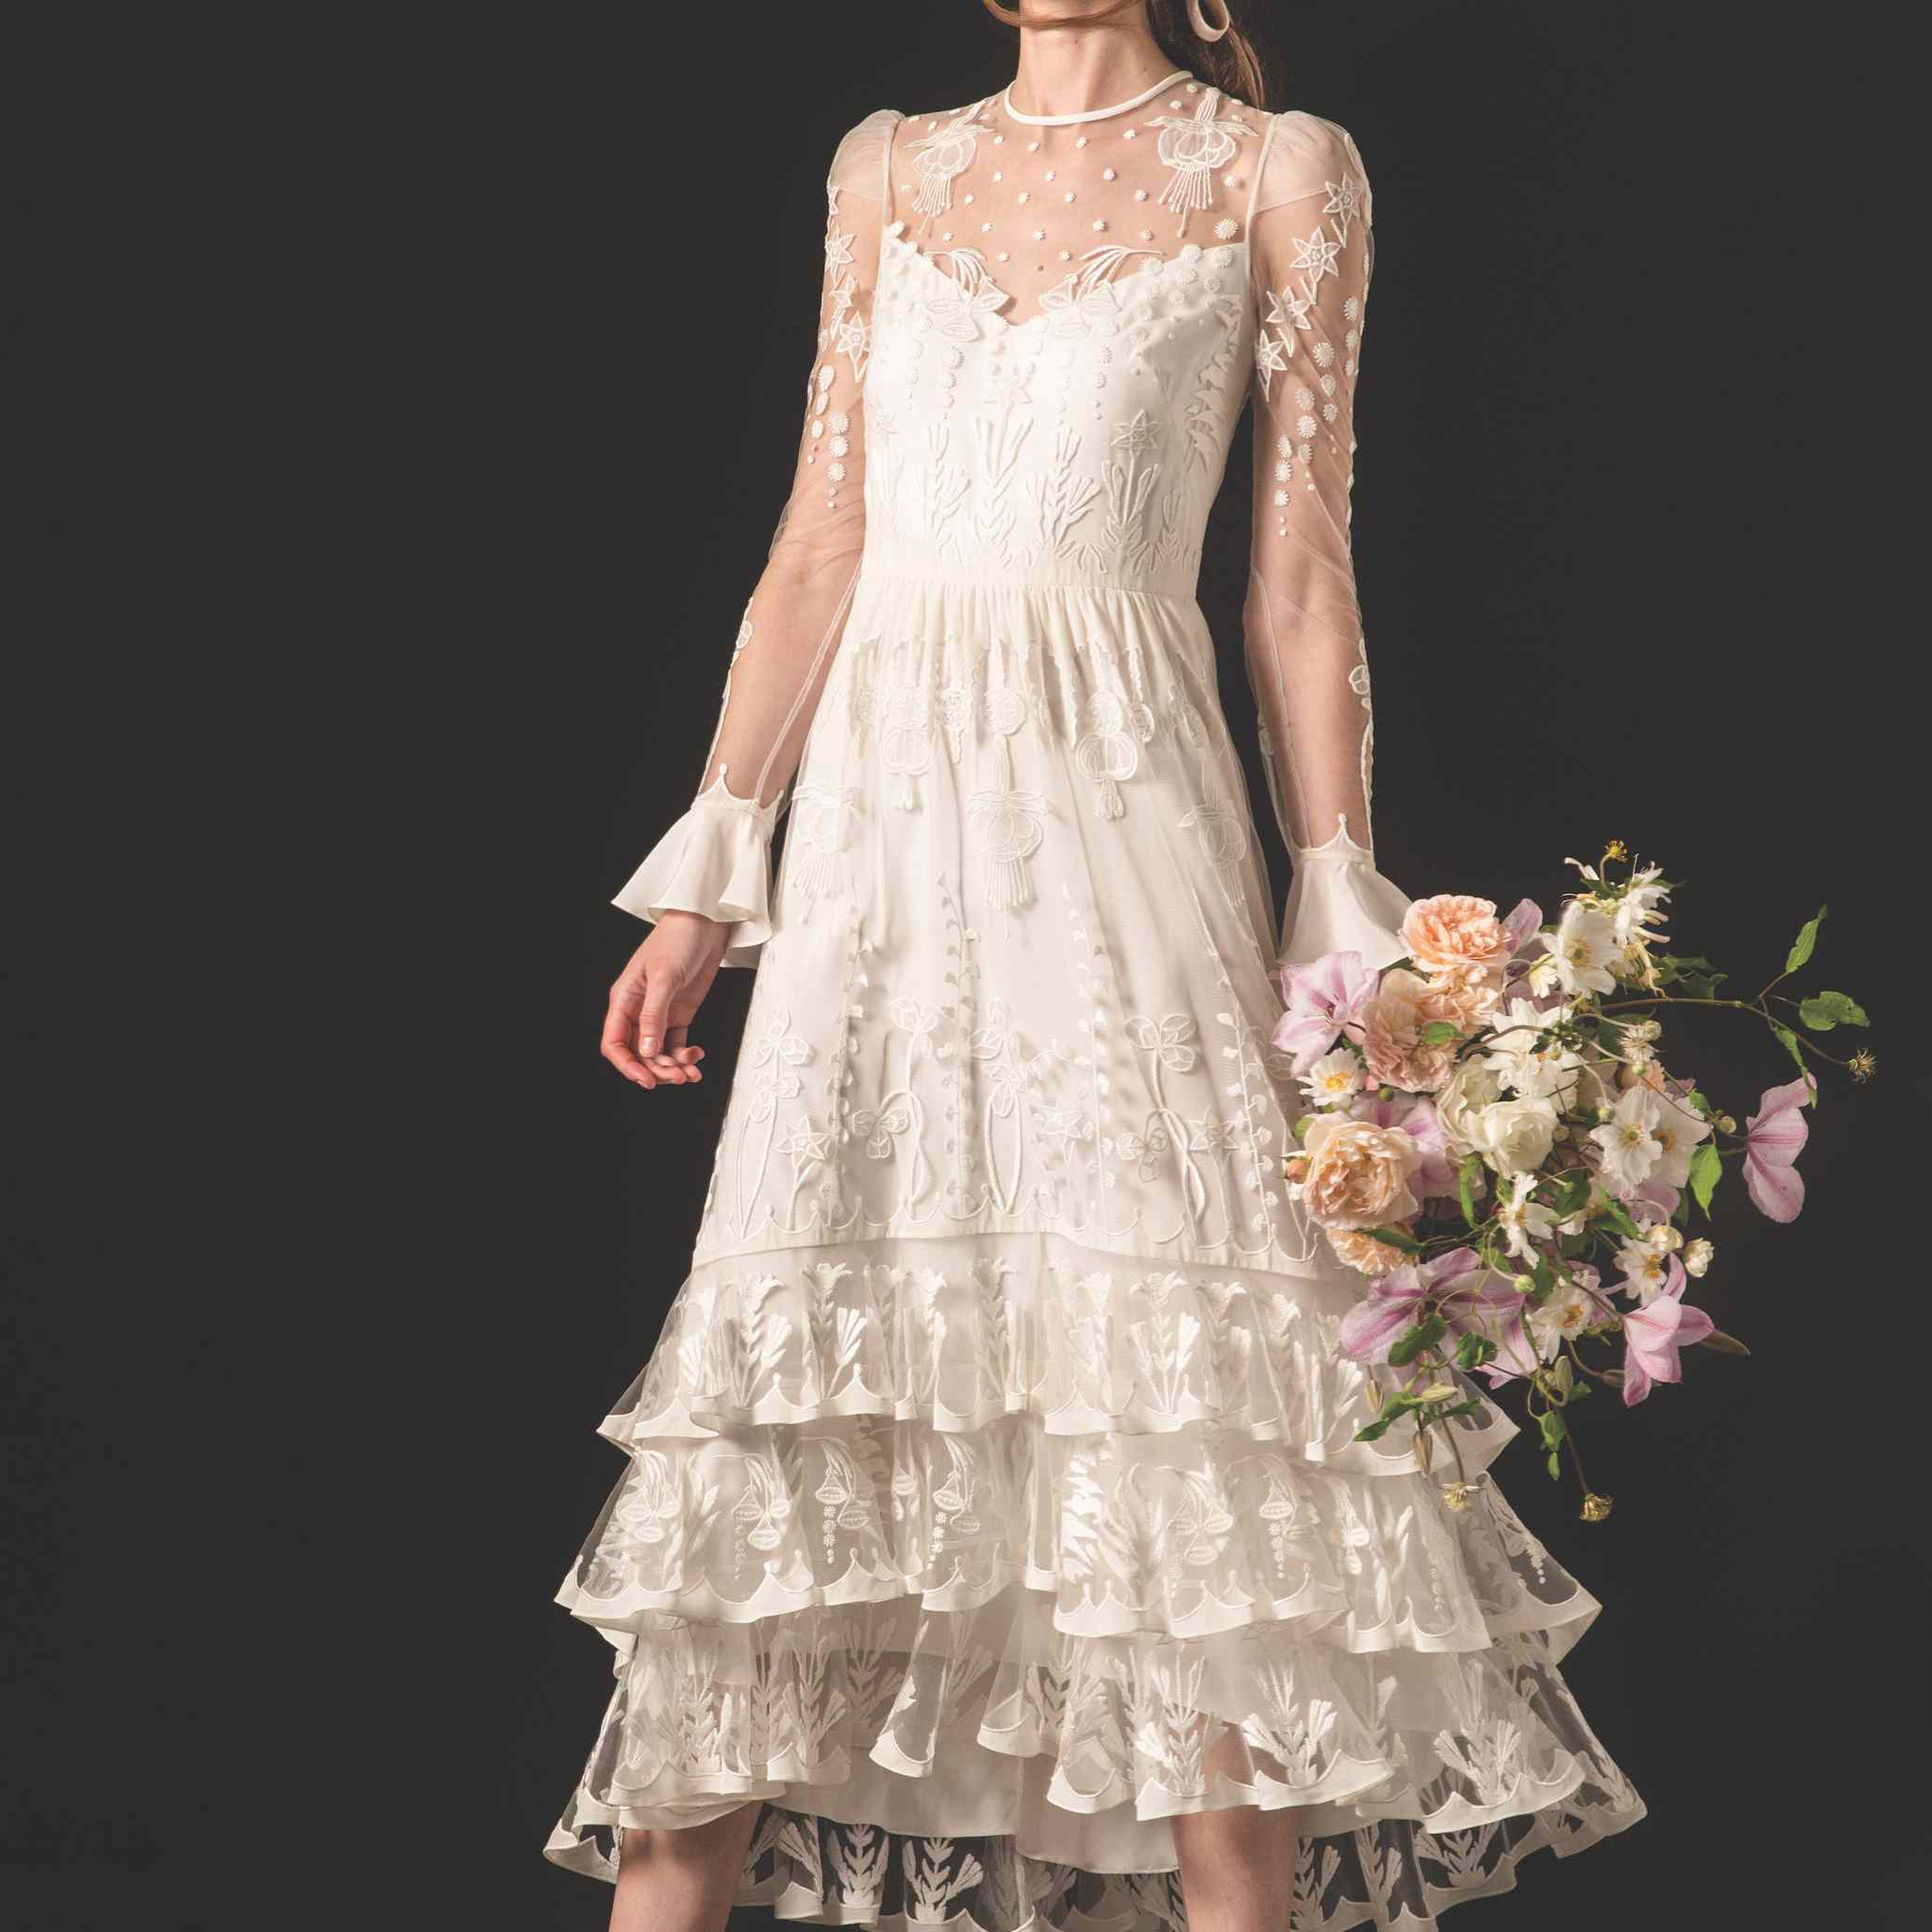 Model in tea-length embroidered tulle dress with long sleeves and ruffles